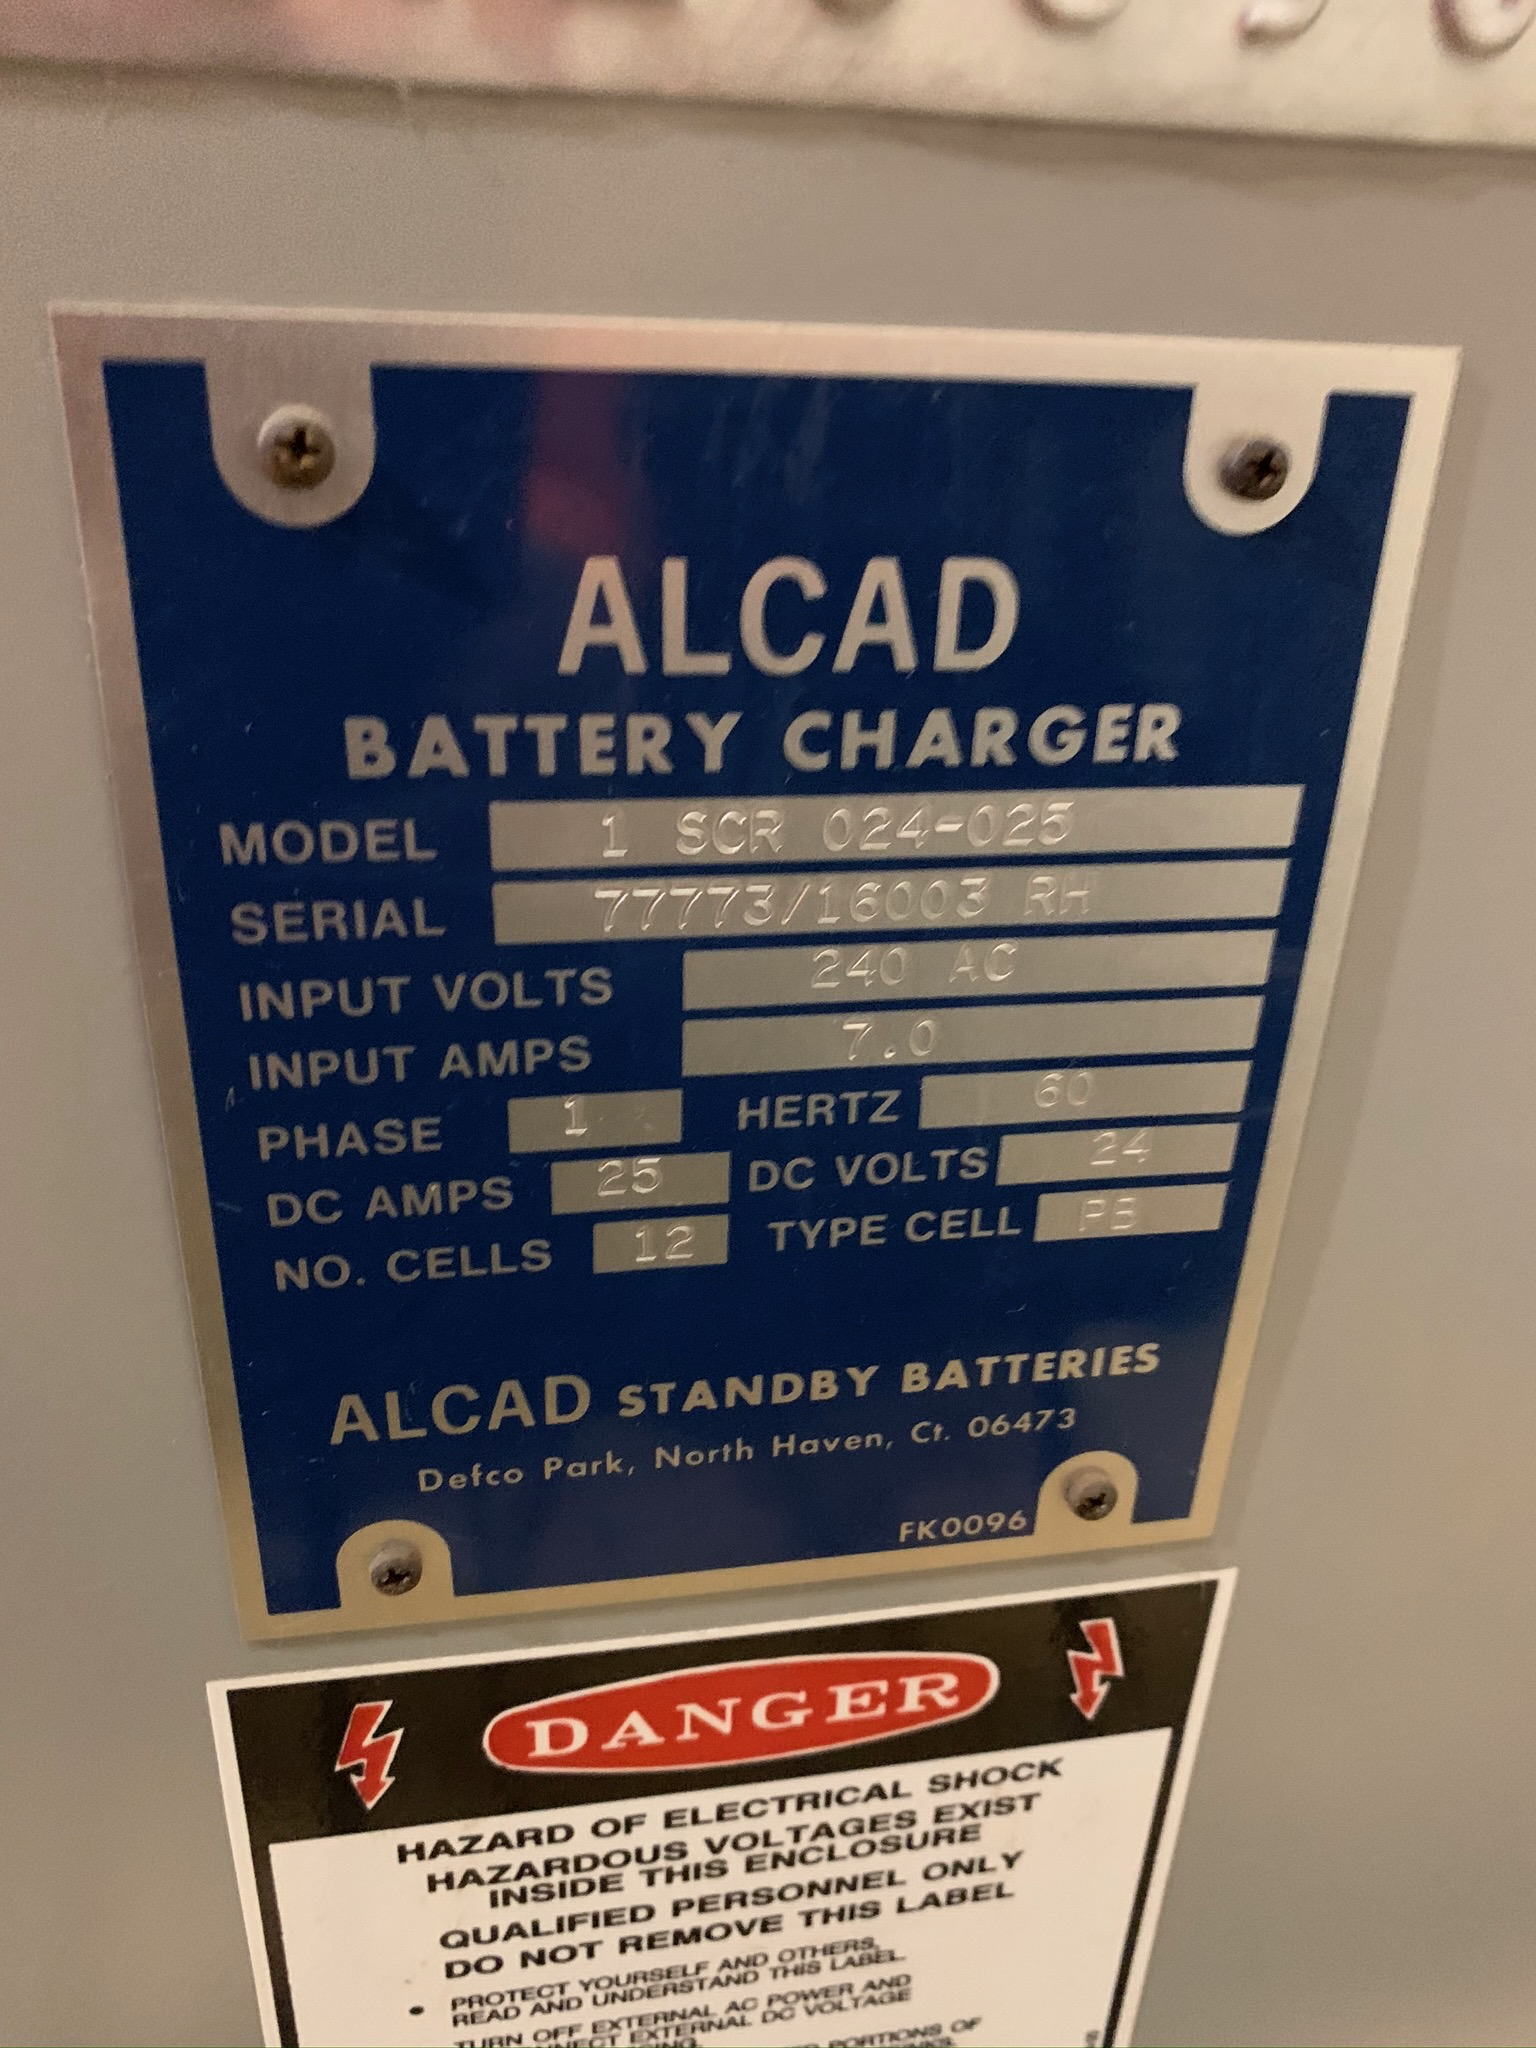 Lot 43 - Alcad Battery Charger Model 1 SCR 024-025 S/N 77773/16003 RH (Rigging Fee - $50)